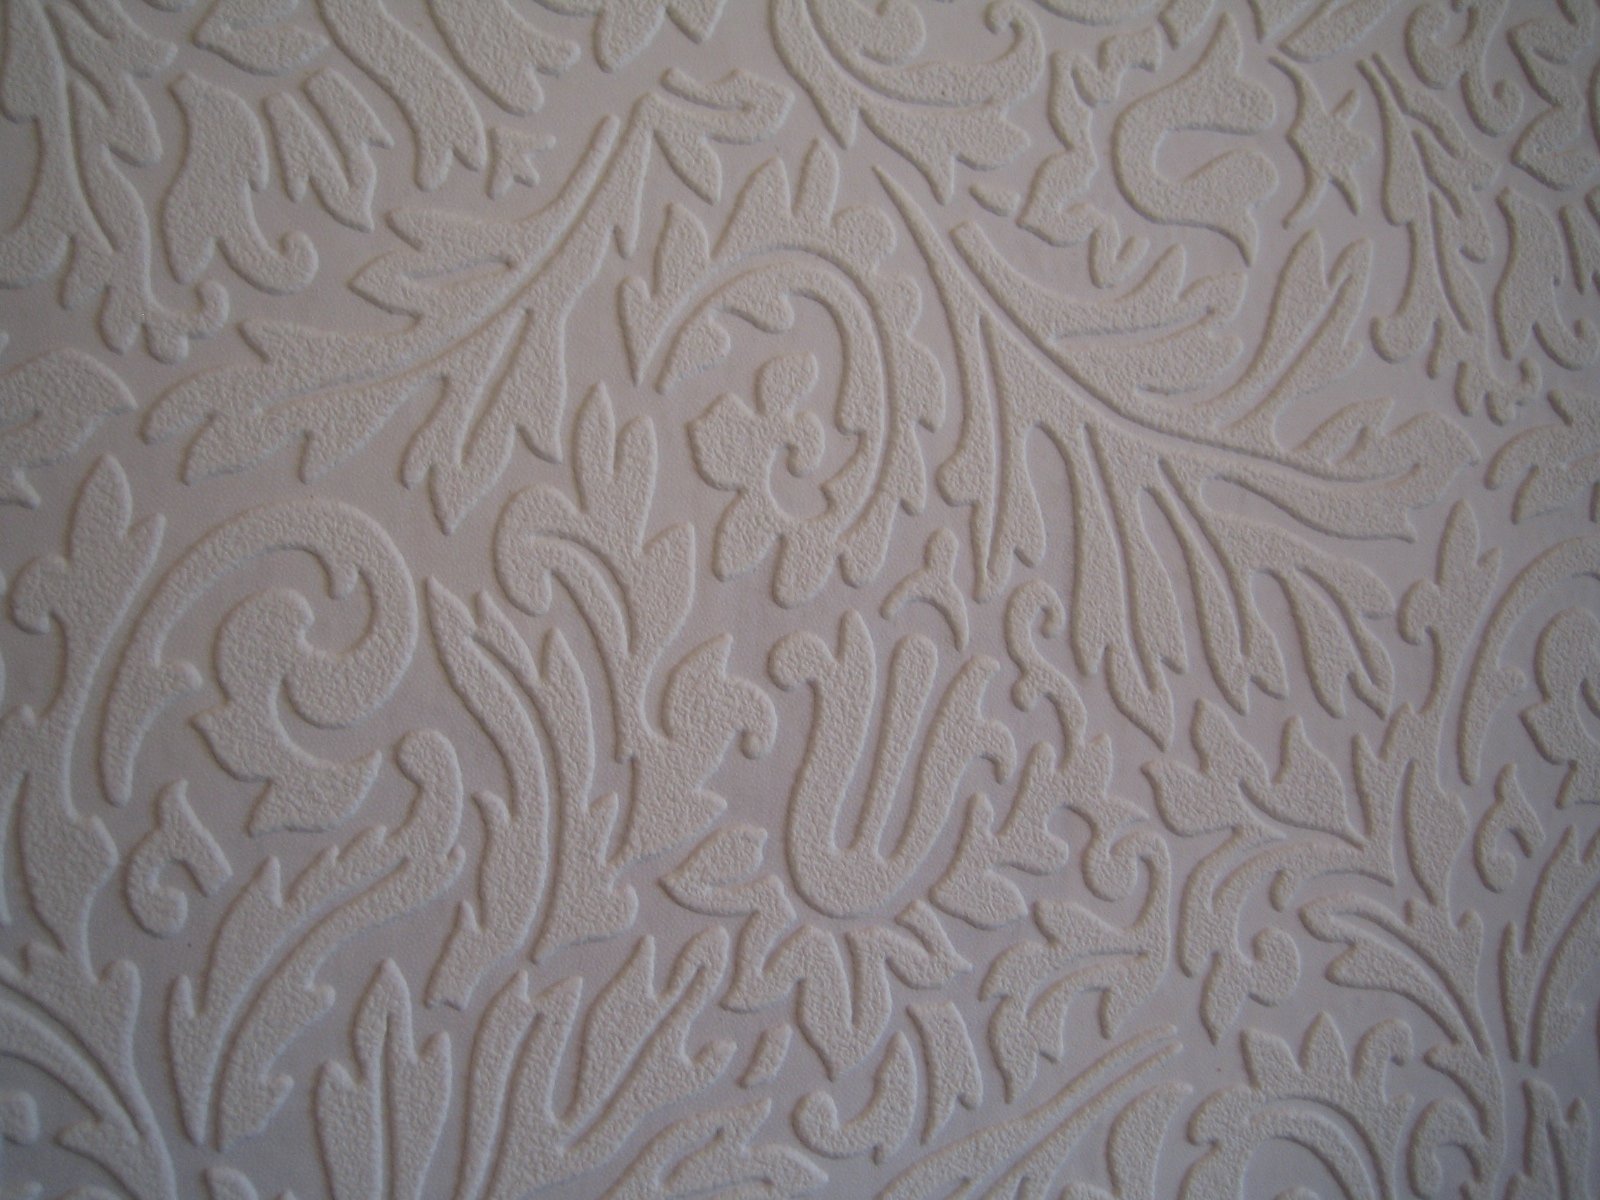 Textured Wallpaper For Walls 2017 Grasscloth Wallpaper Interiors Inside Ideas Interiors design about Everything [magnanprojects.com]